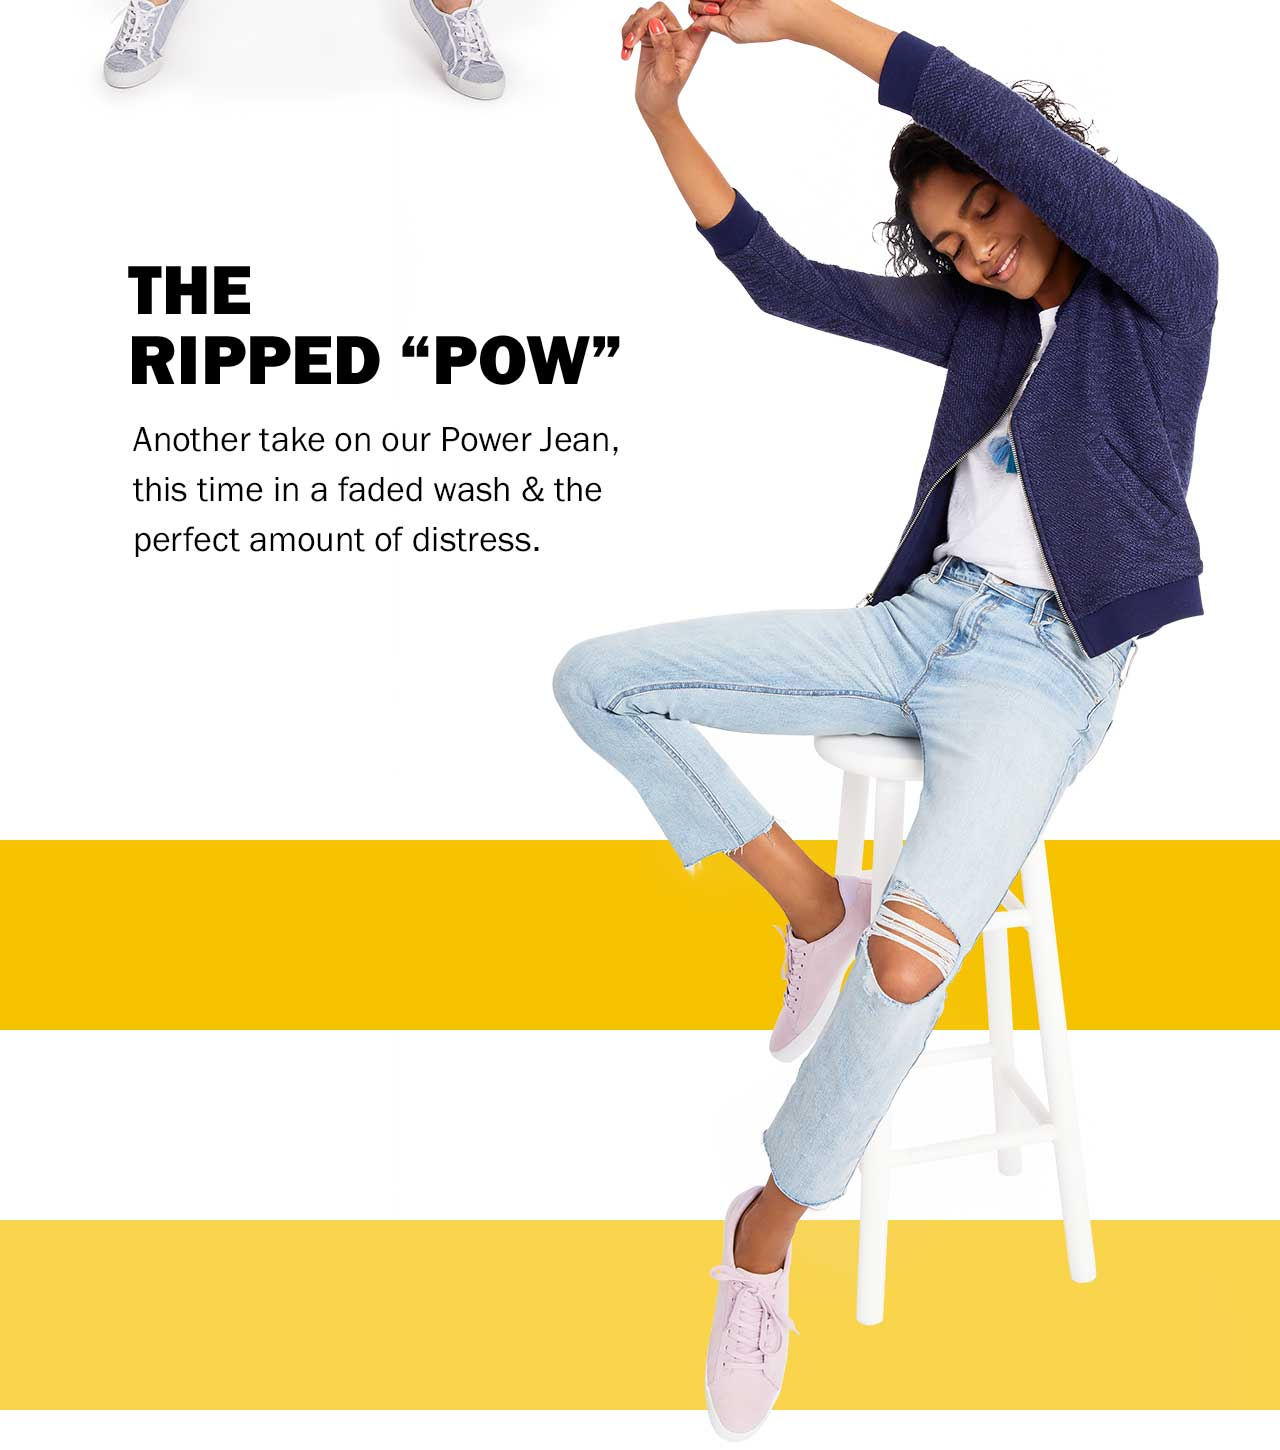 THE RIPPED 'POW'